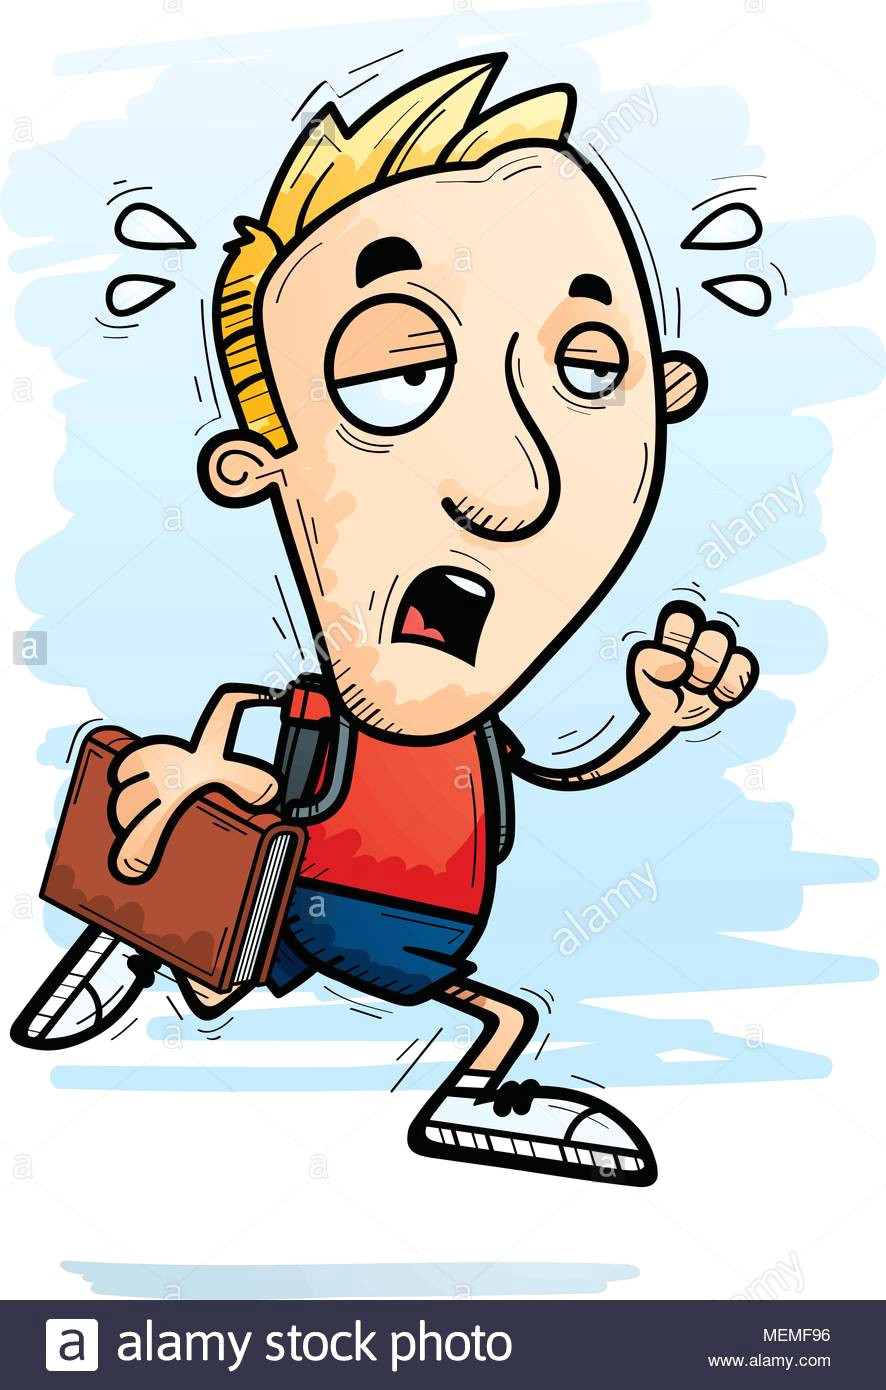 a cartoon illustration of a man student running and looking exhausted